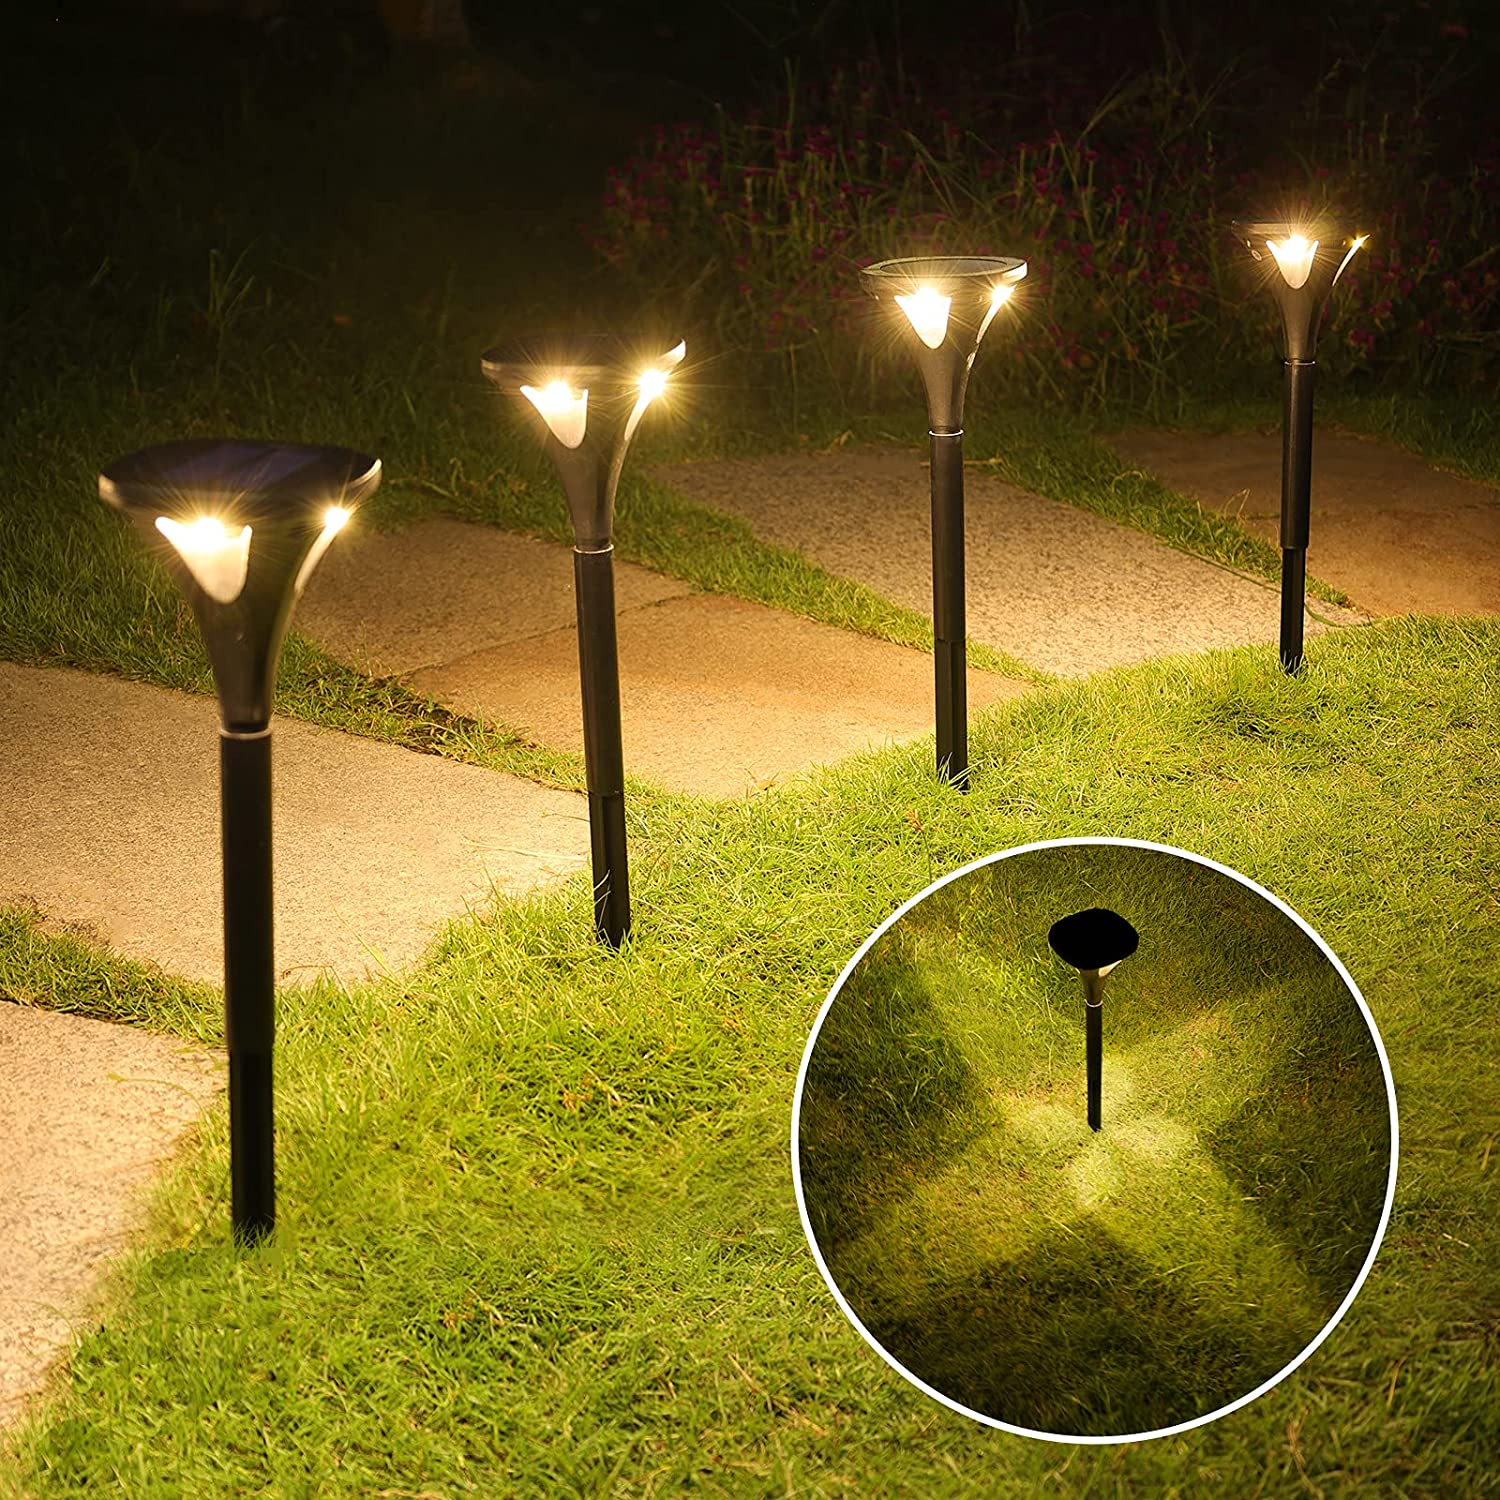 NIORSUN Solar Max 50% OFF Pathway Lights Outdoor Light Be super welcome 5 Modes